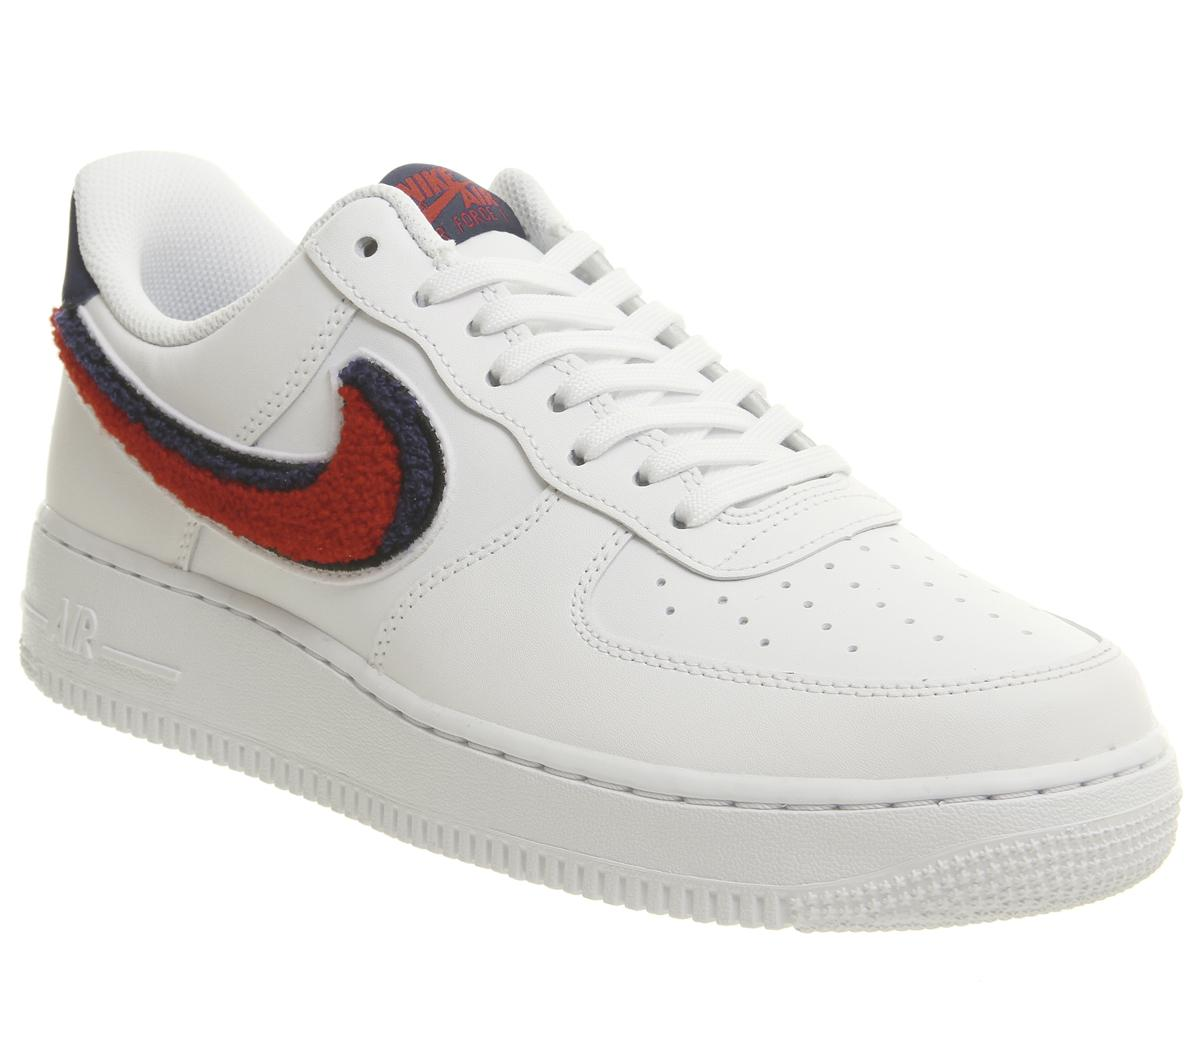 Nike Air Force 1 07 Trainers White University Red Sneaker